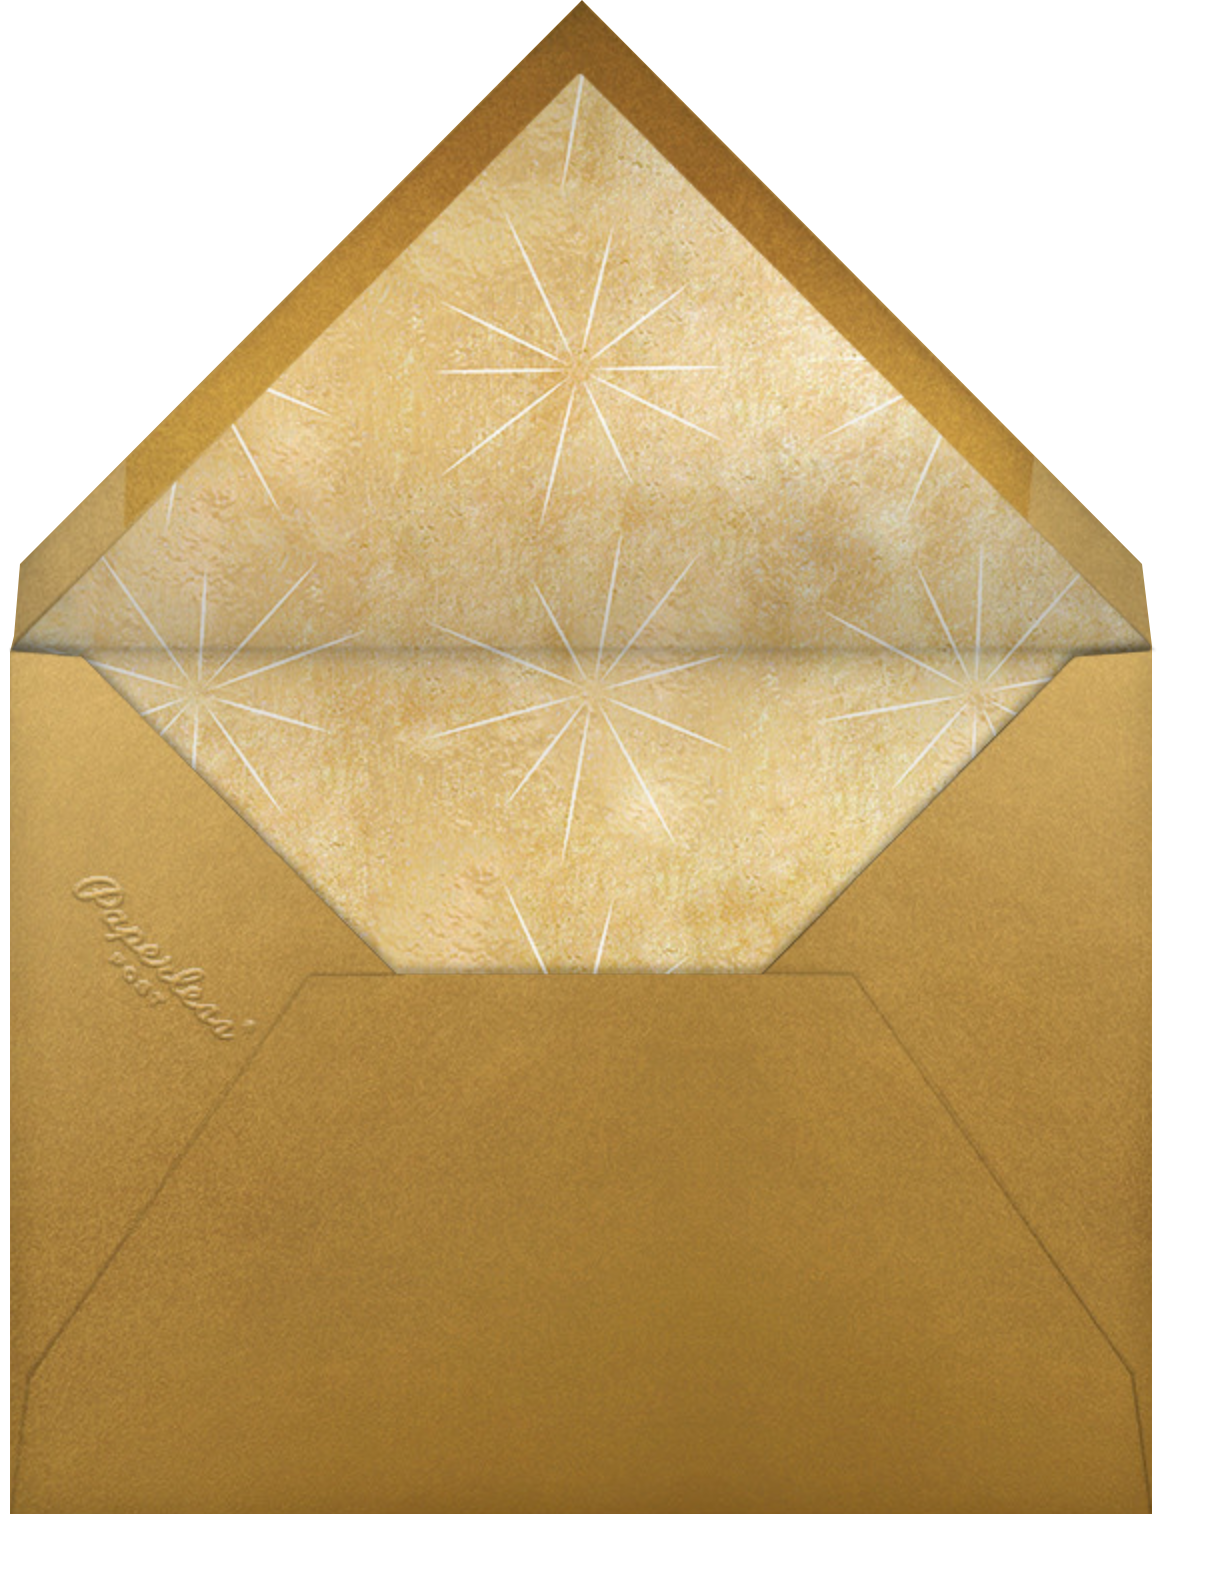 Modest Dazzle - Douglas - Paperless Post - Corporate invitations - envelope back